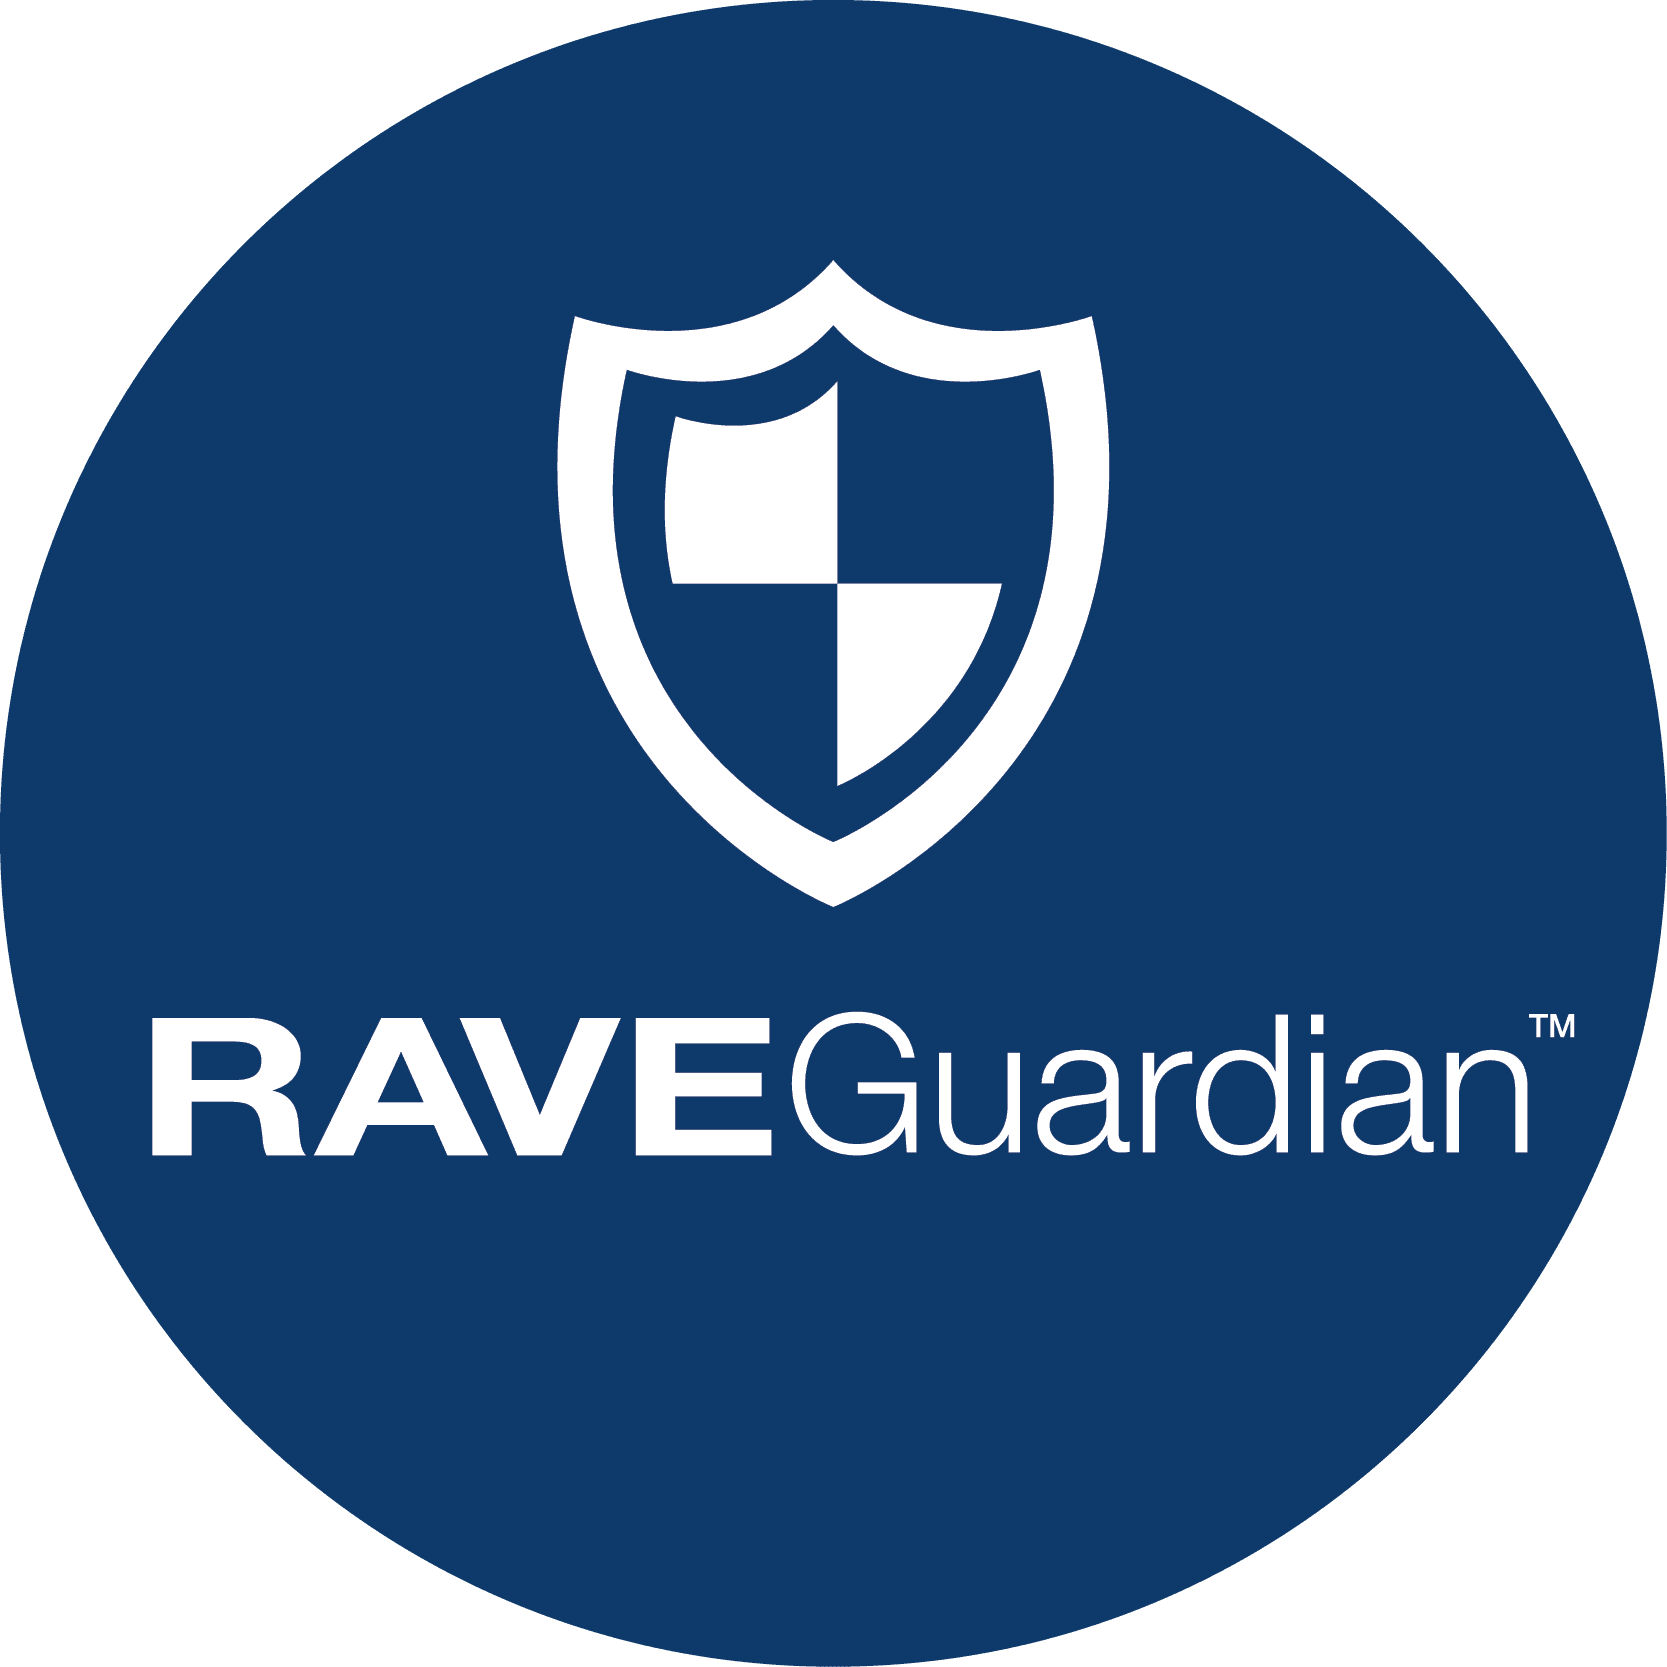 Rave Guardian Customize Your Own